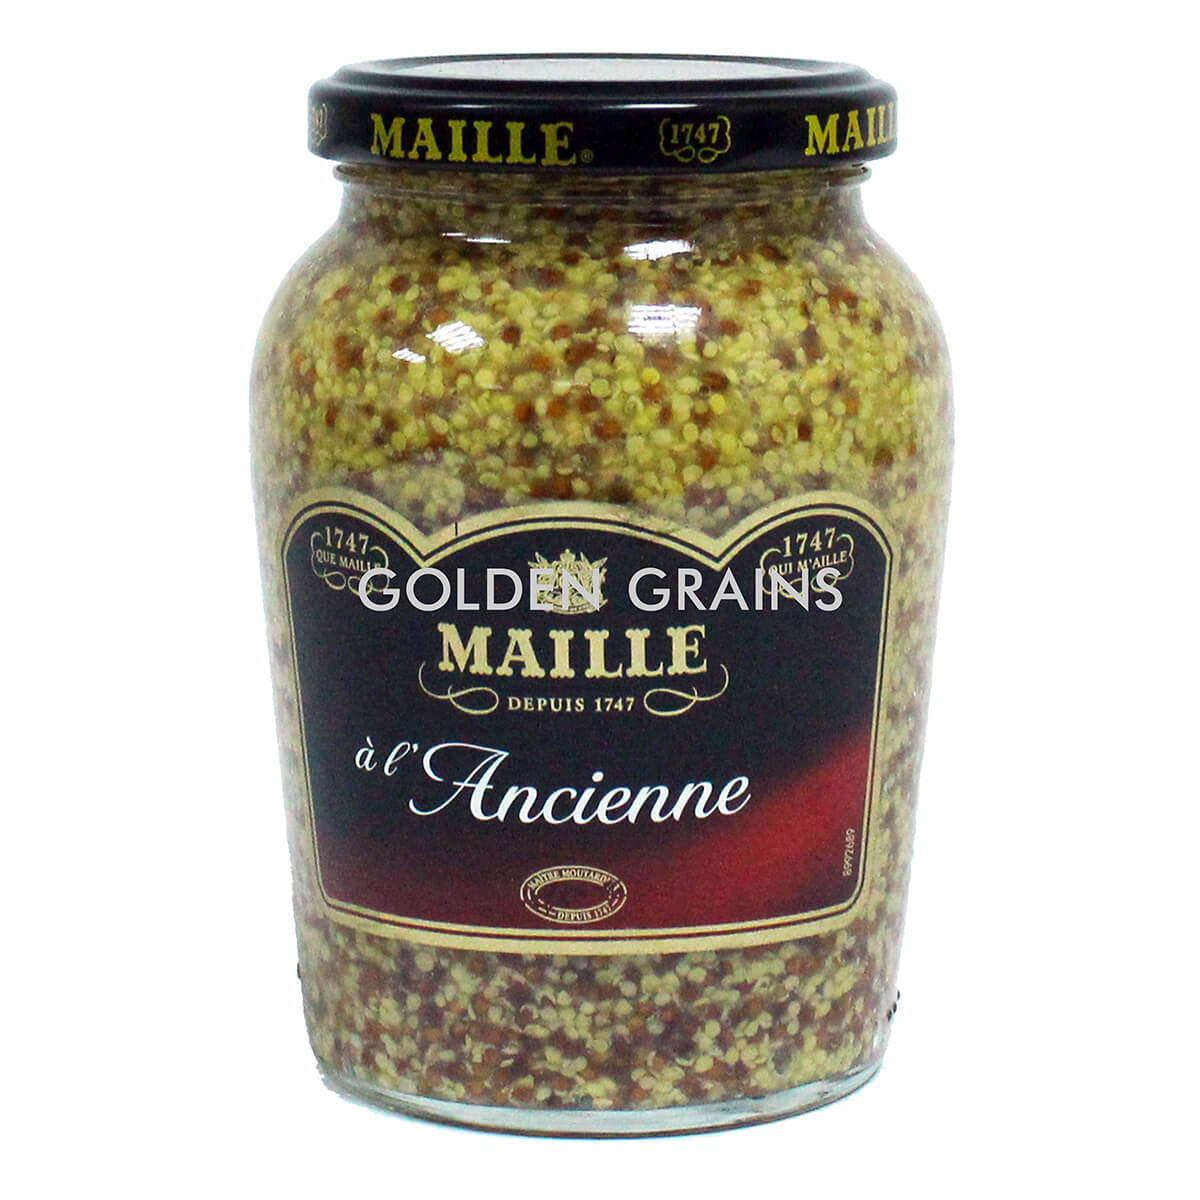 Golden Grains Dubai Export - Maille - Ancienne - Front.jpg